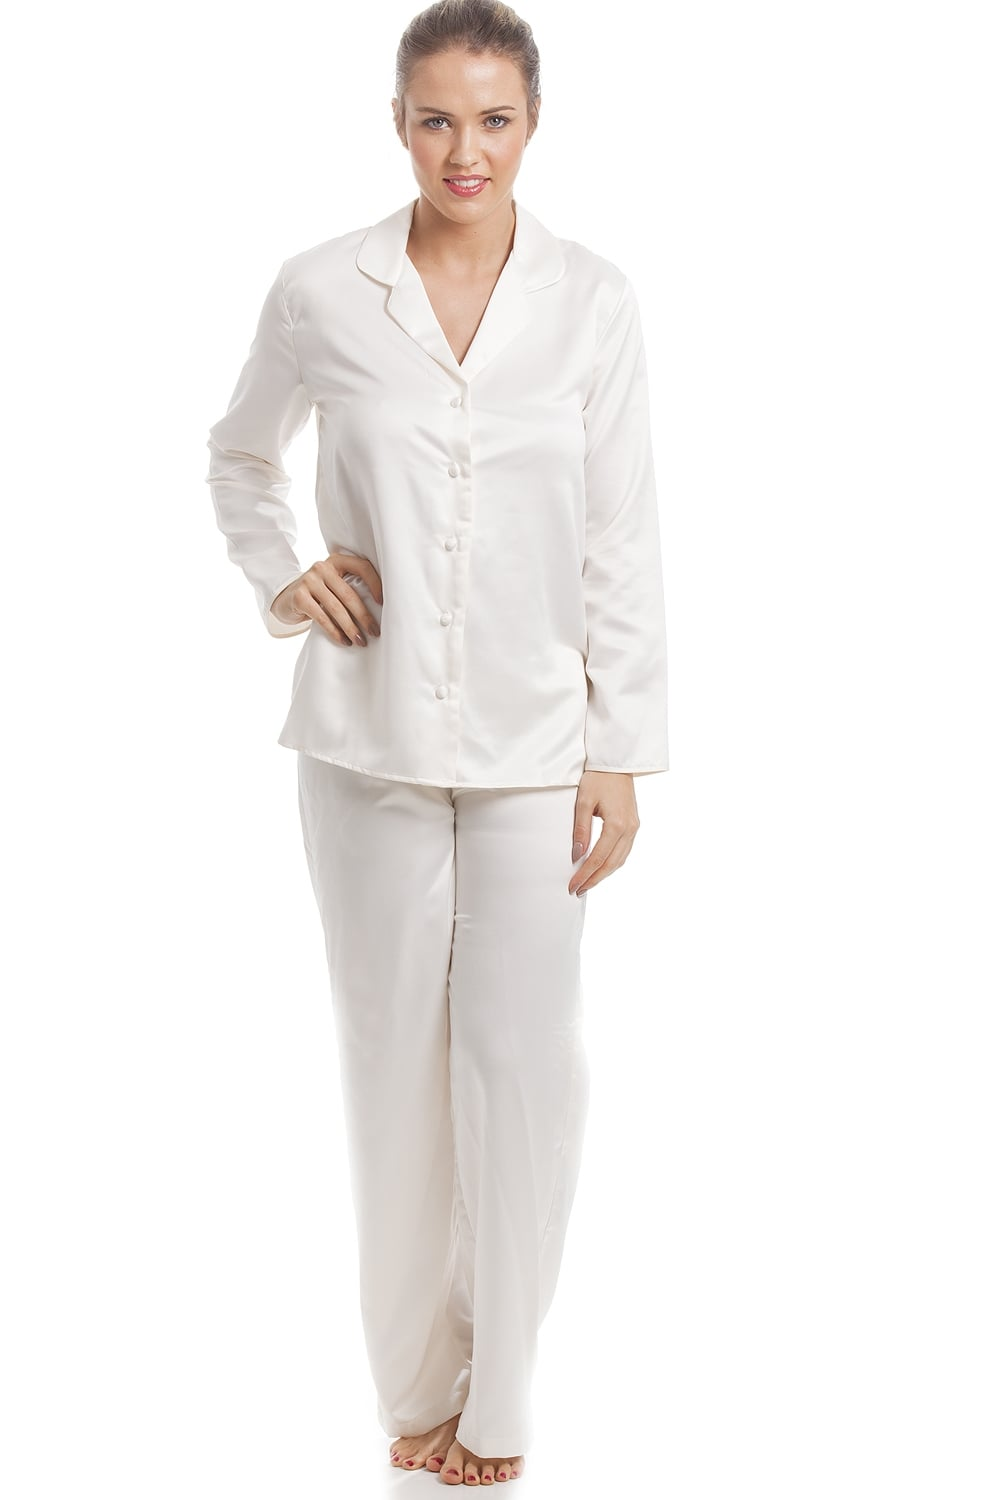 e3a716c596 Cream Satin Pyjama Set